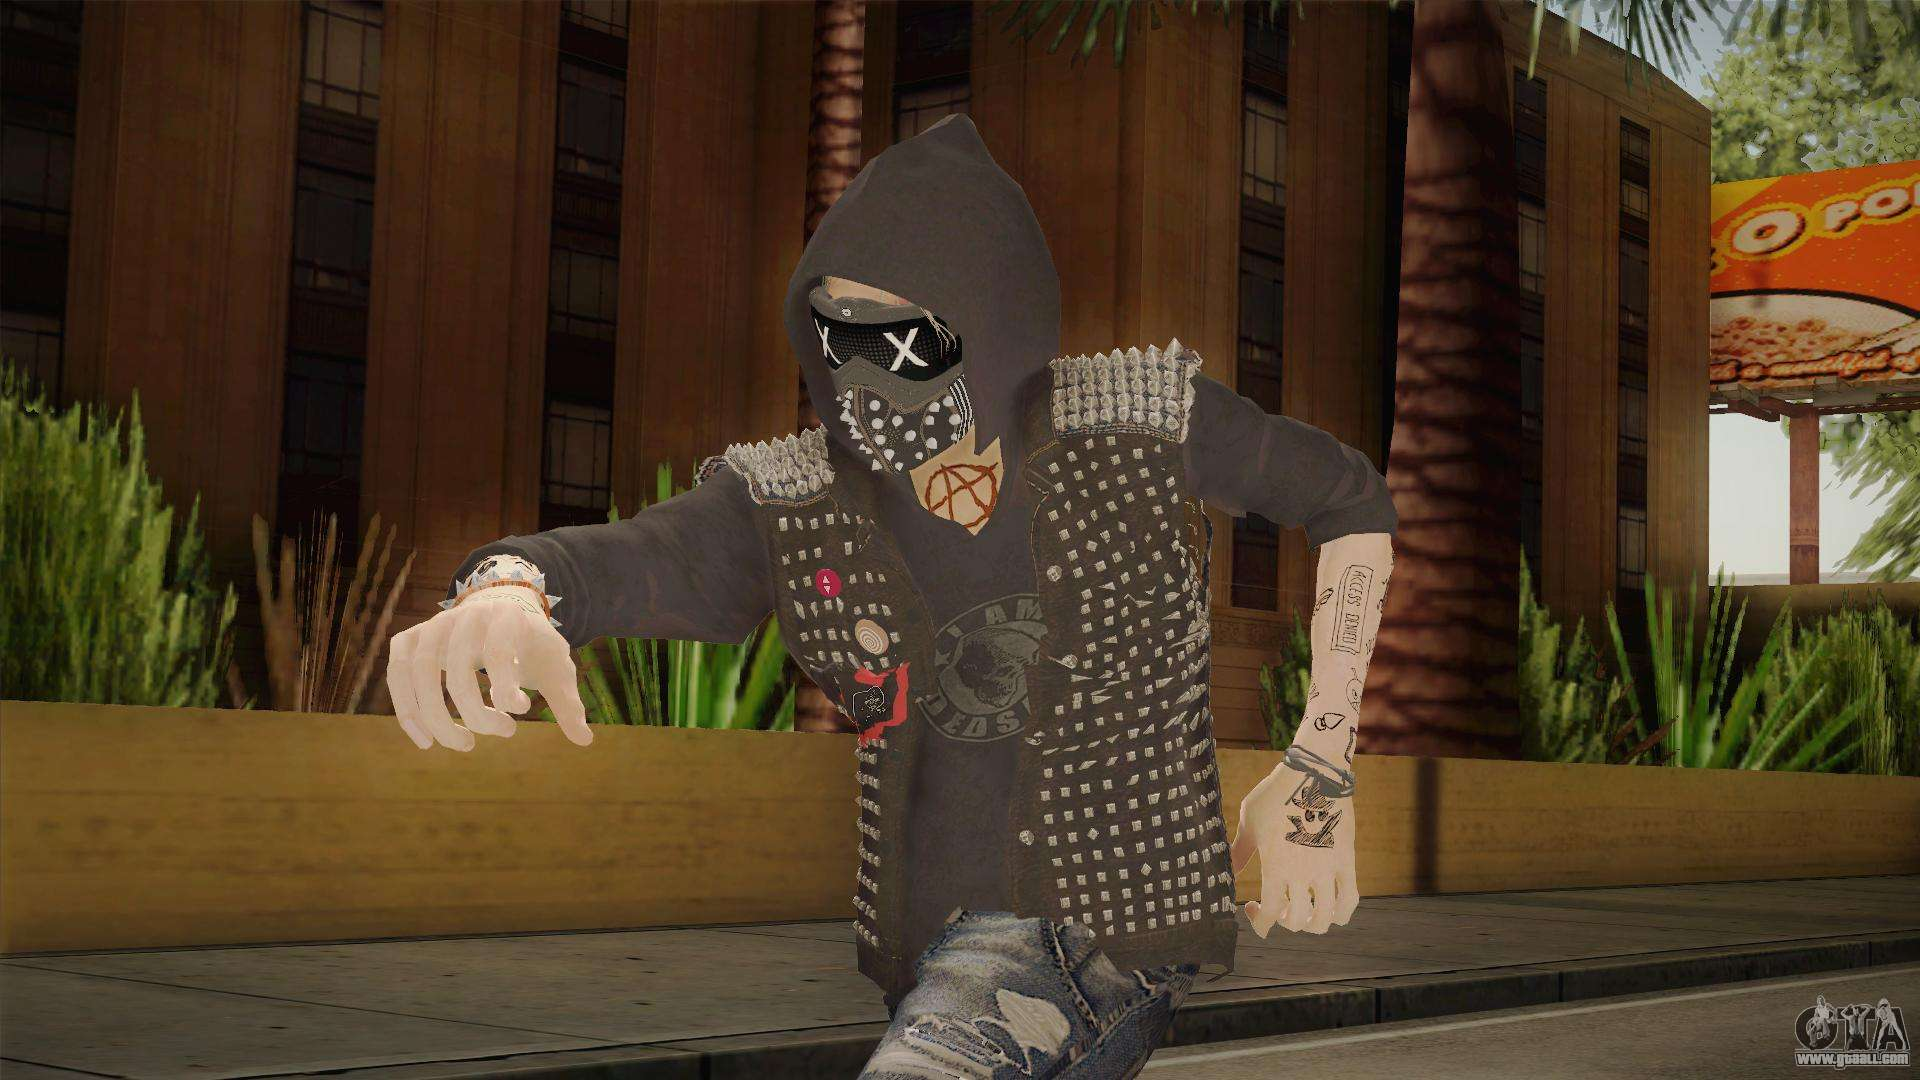 Watch Dogs Wrench Gif